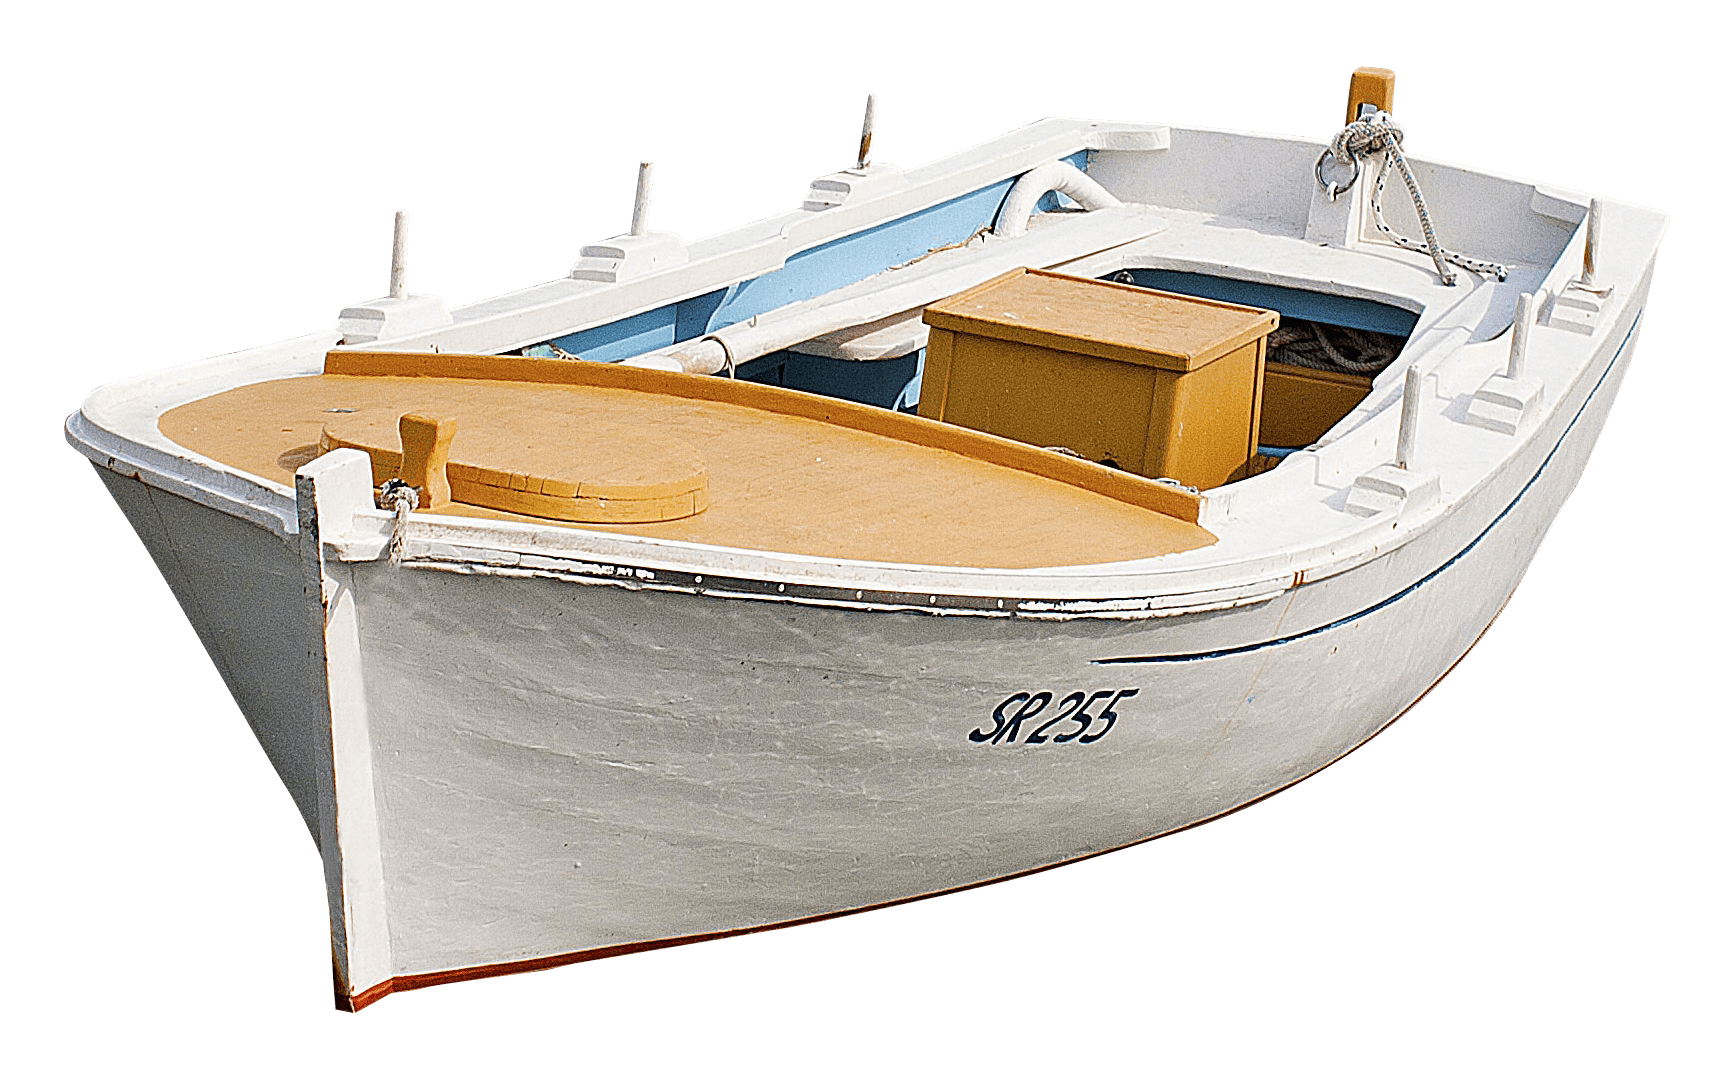 White wooden boat transparent. Yacht png small ship transparent